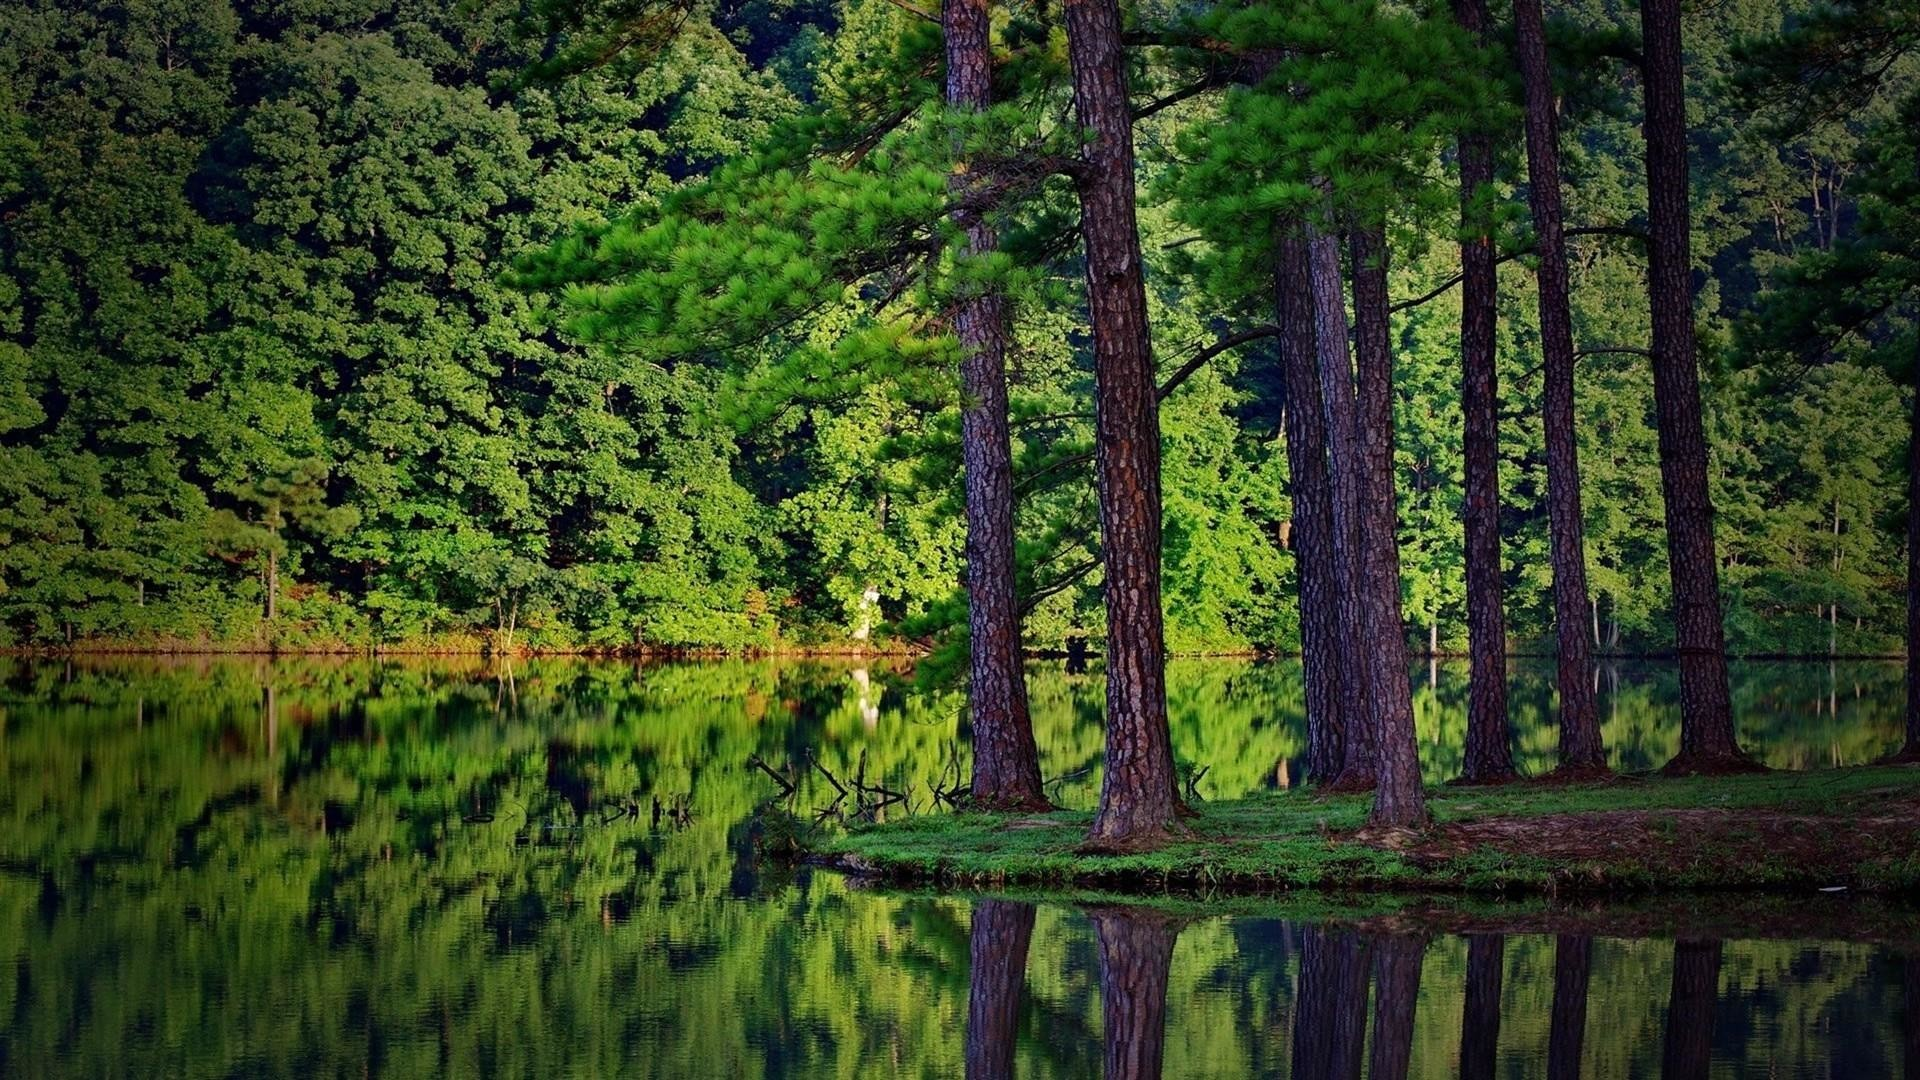 Res: 1920x1080, Green Pine Forest At The Lakeside Wallpaper | Wallpaper Studio 10 | Tens of  thousands HD and UltraHD wallpapers for Android, Windows and Xbox